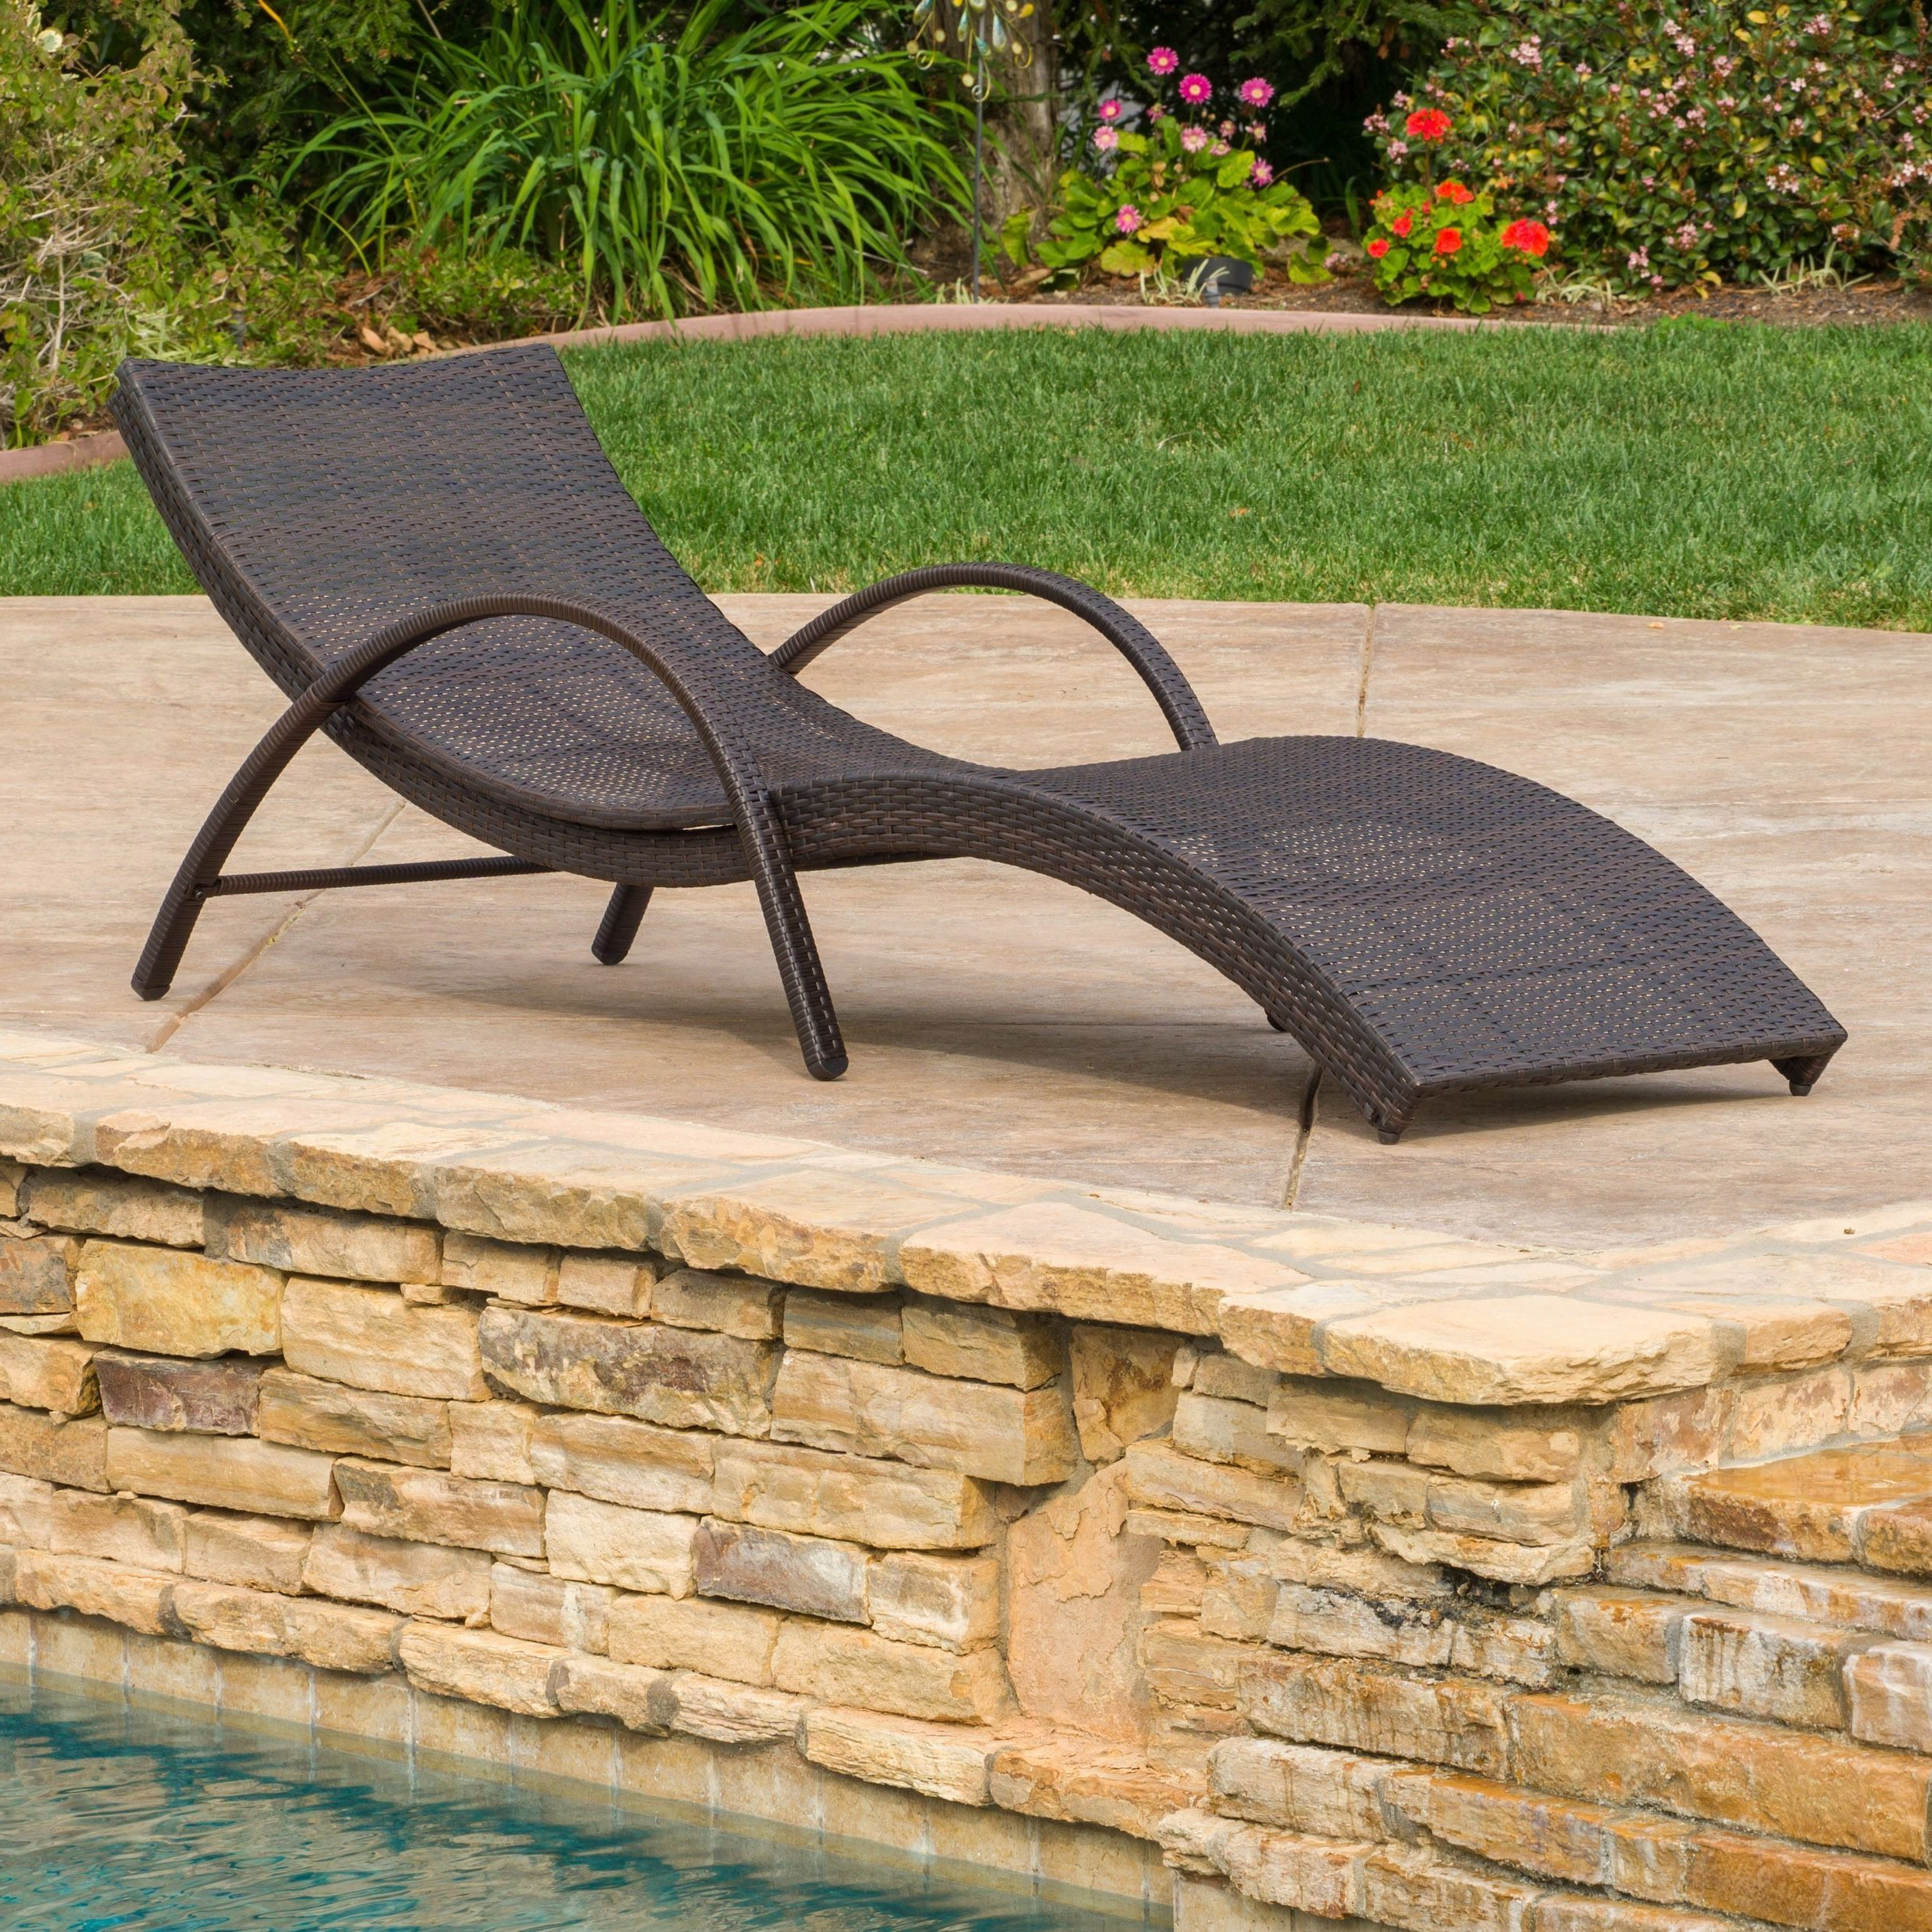 Most Recently Released Acapulco Outdoor Wicker Folding Armed Chaise Lounge Inside Resin Wicker Multi Position Double Patio Chaise Lounges (View 15 of 25)